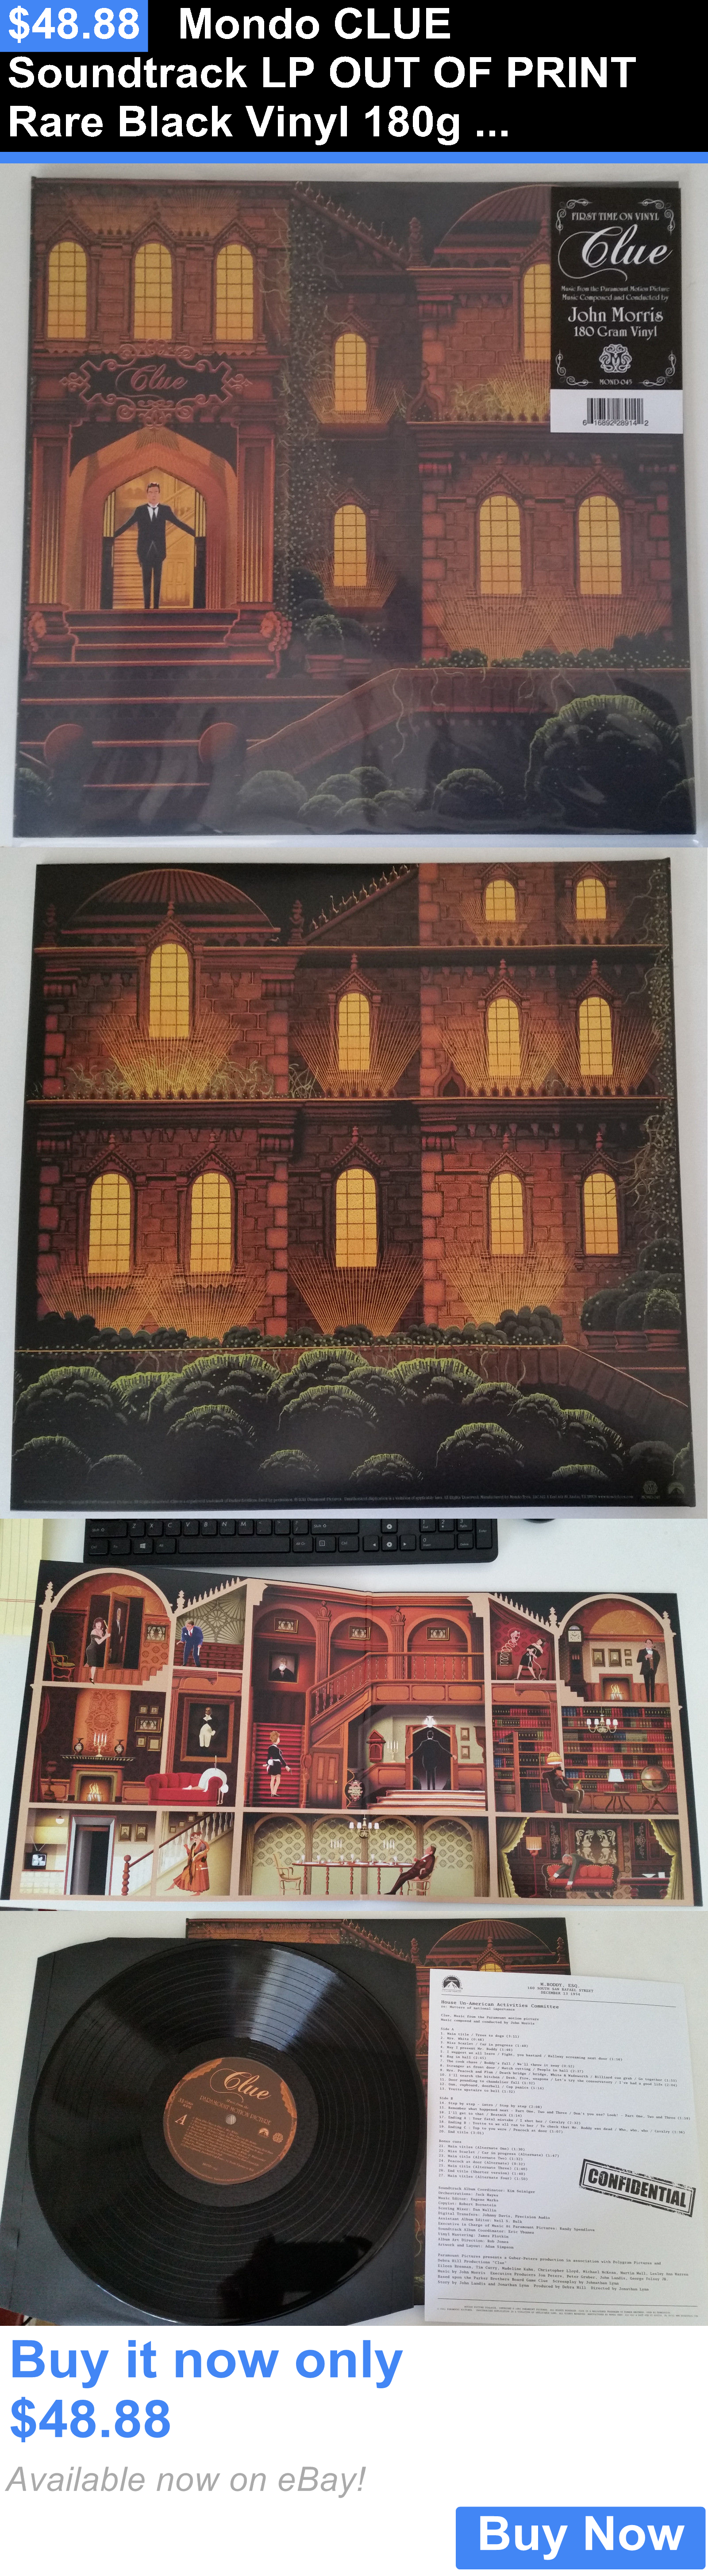 Music Albums: Mondo Clue Soundtrack Lp Out Of Print Rare Black Vinyl 180G Limited Edition New BUY IT NOW ONLY: $48.88